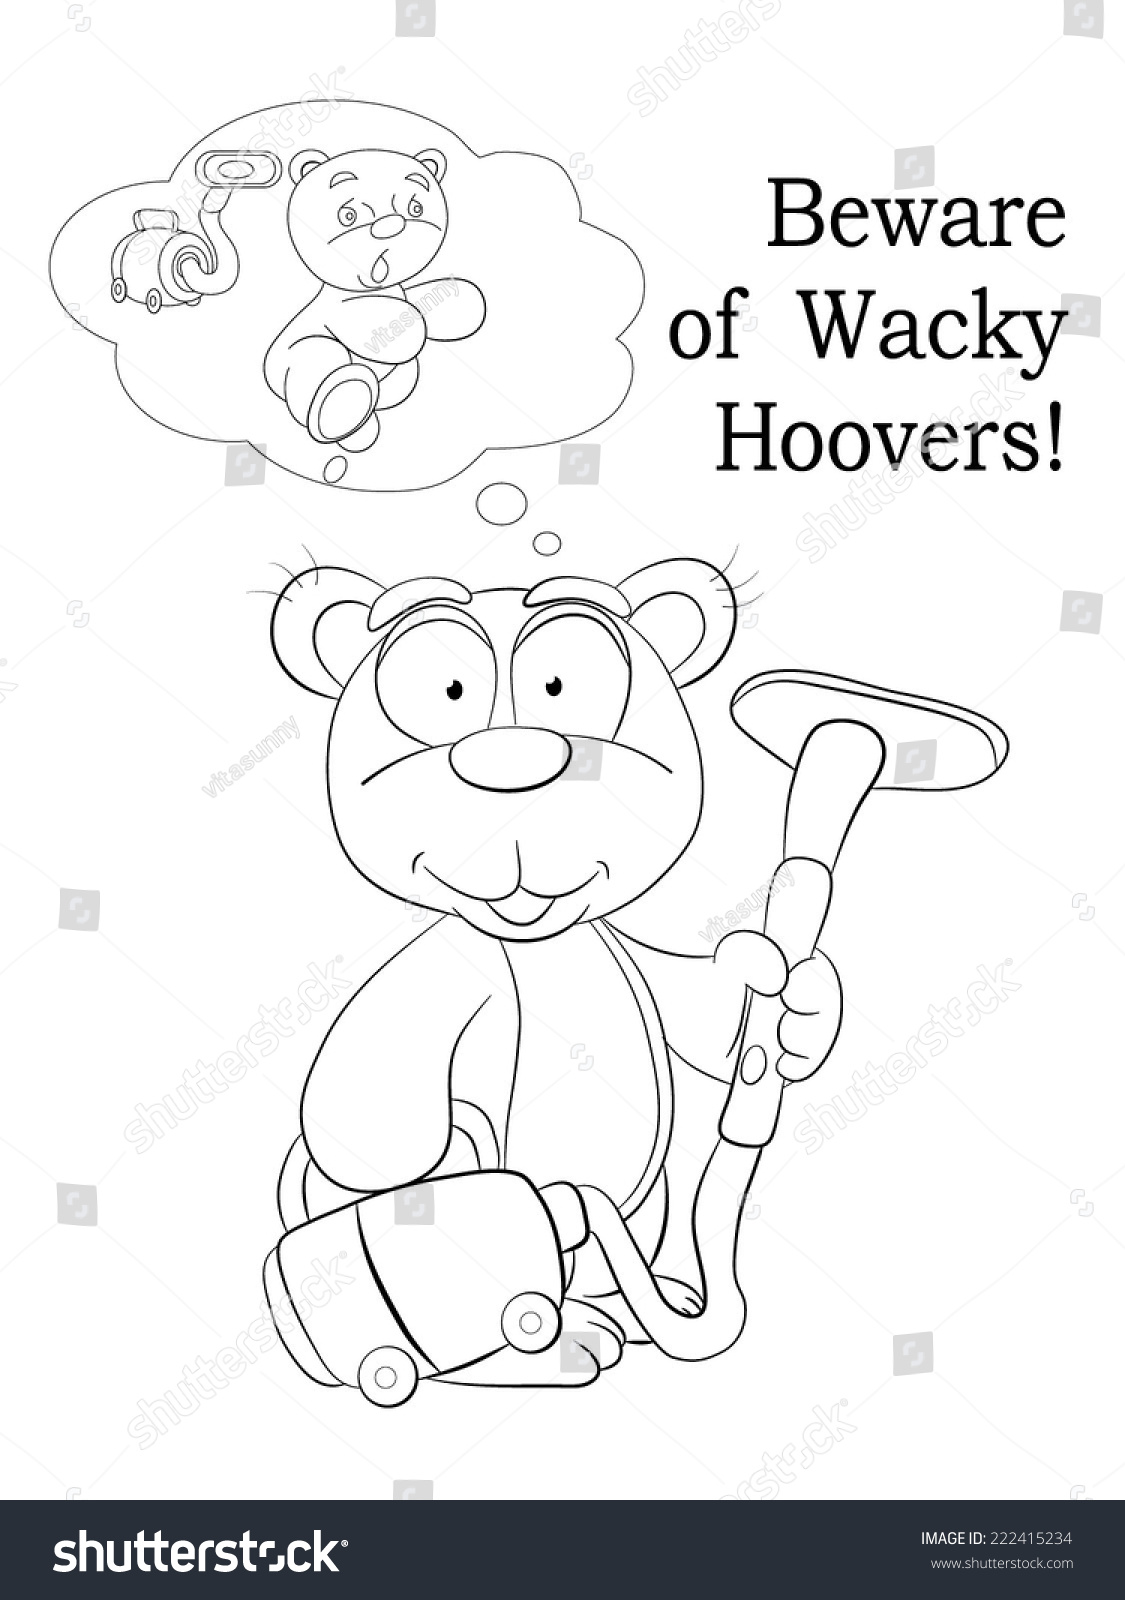 Coloring pages vacuum cleaner - Cartoon Small Teddy Bear And Vacuum Cleaner Coloring Book